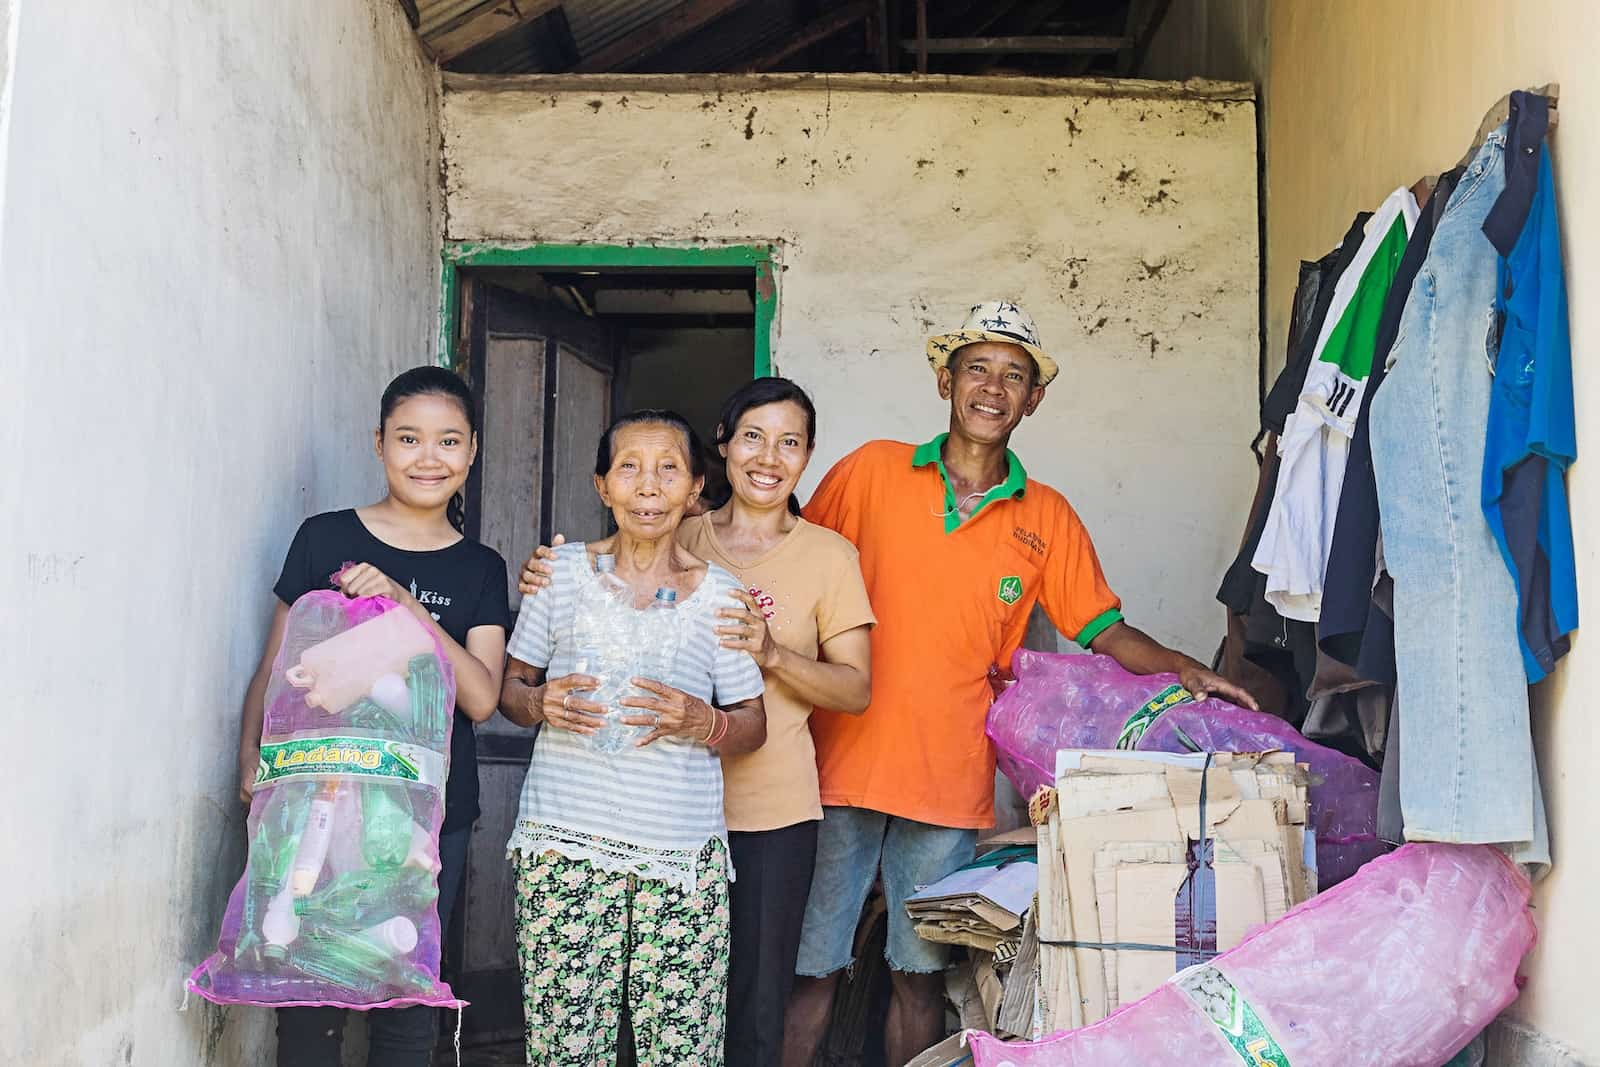 A family of a girl, grandmother, mother and father stand outside a home holding large bags full of plastic bottles.